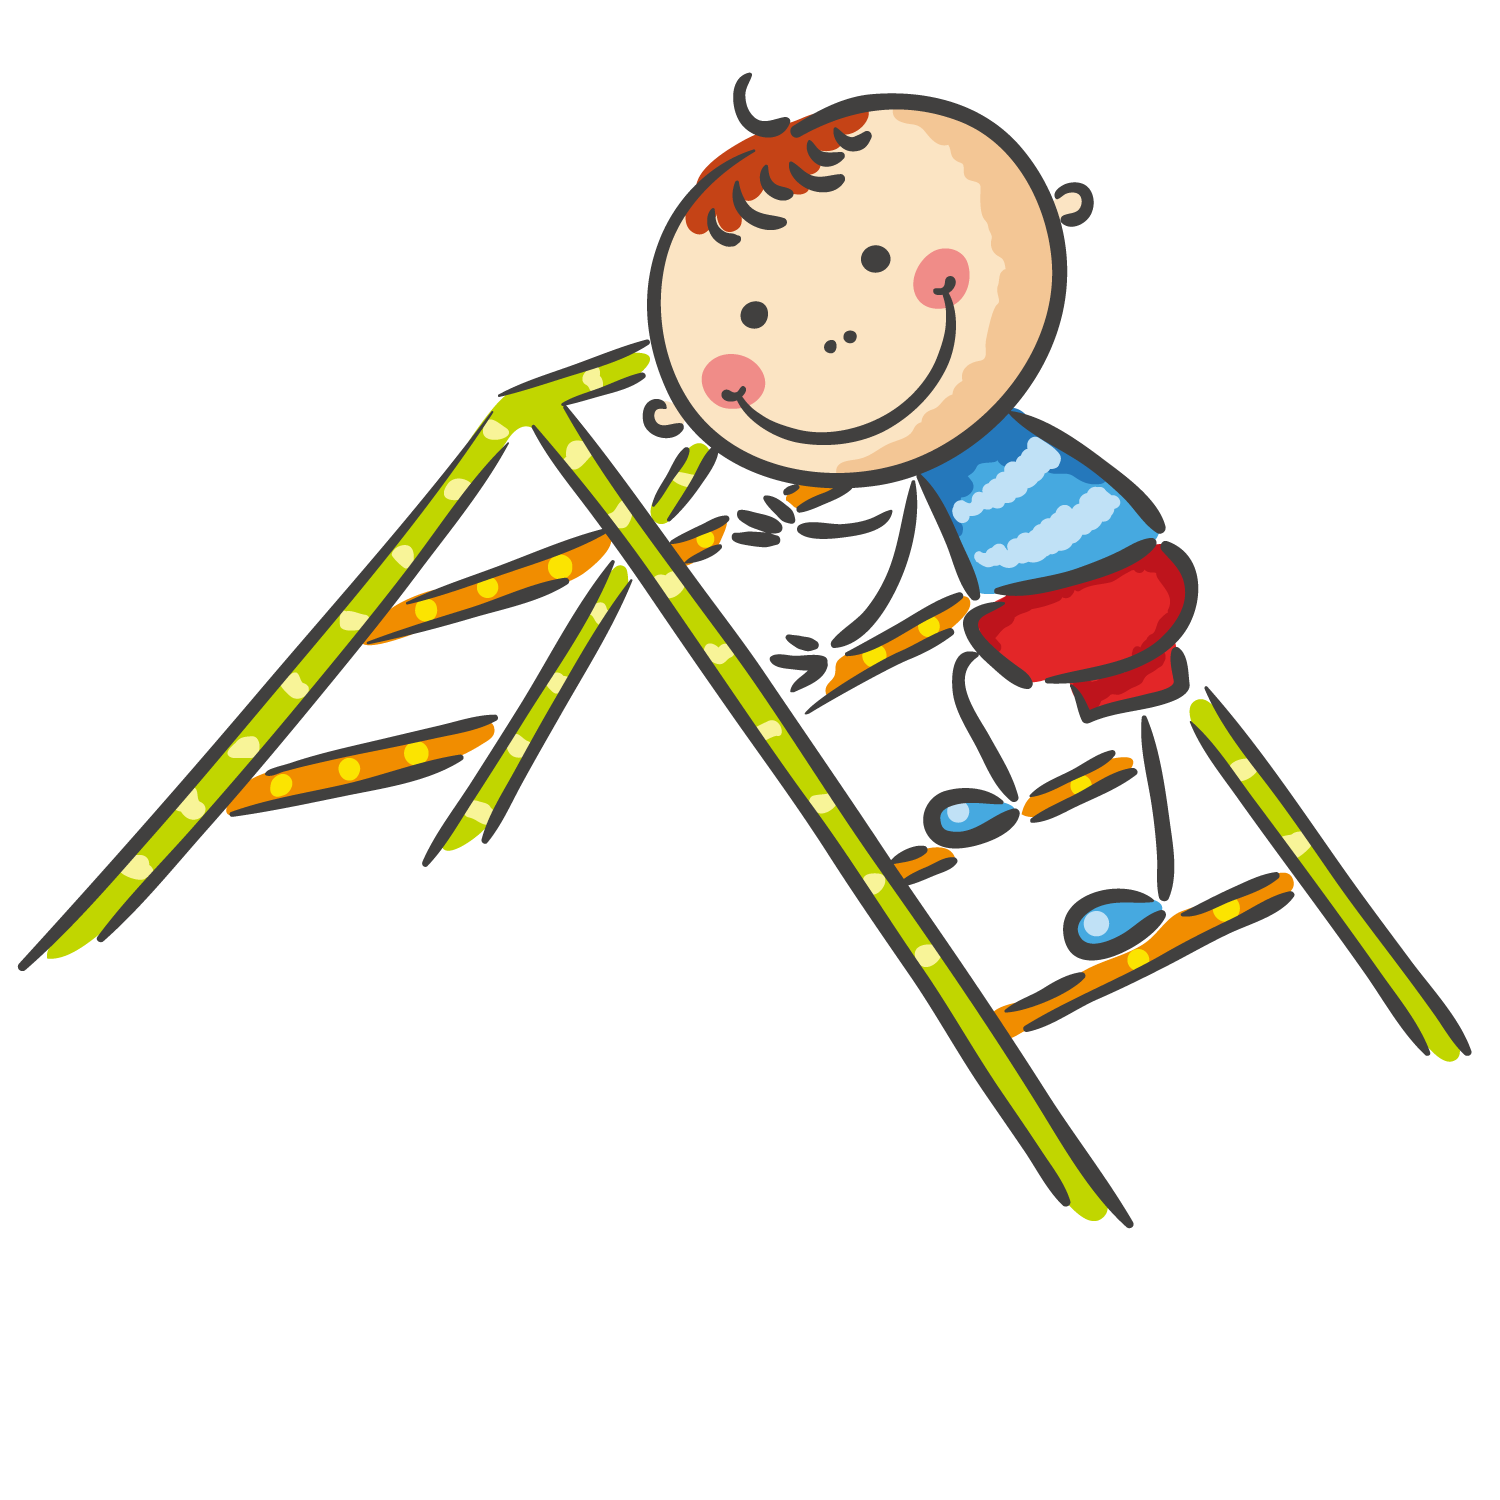 clip art library stock Playground clip art climb. Climber clipart child.